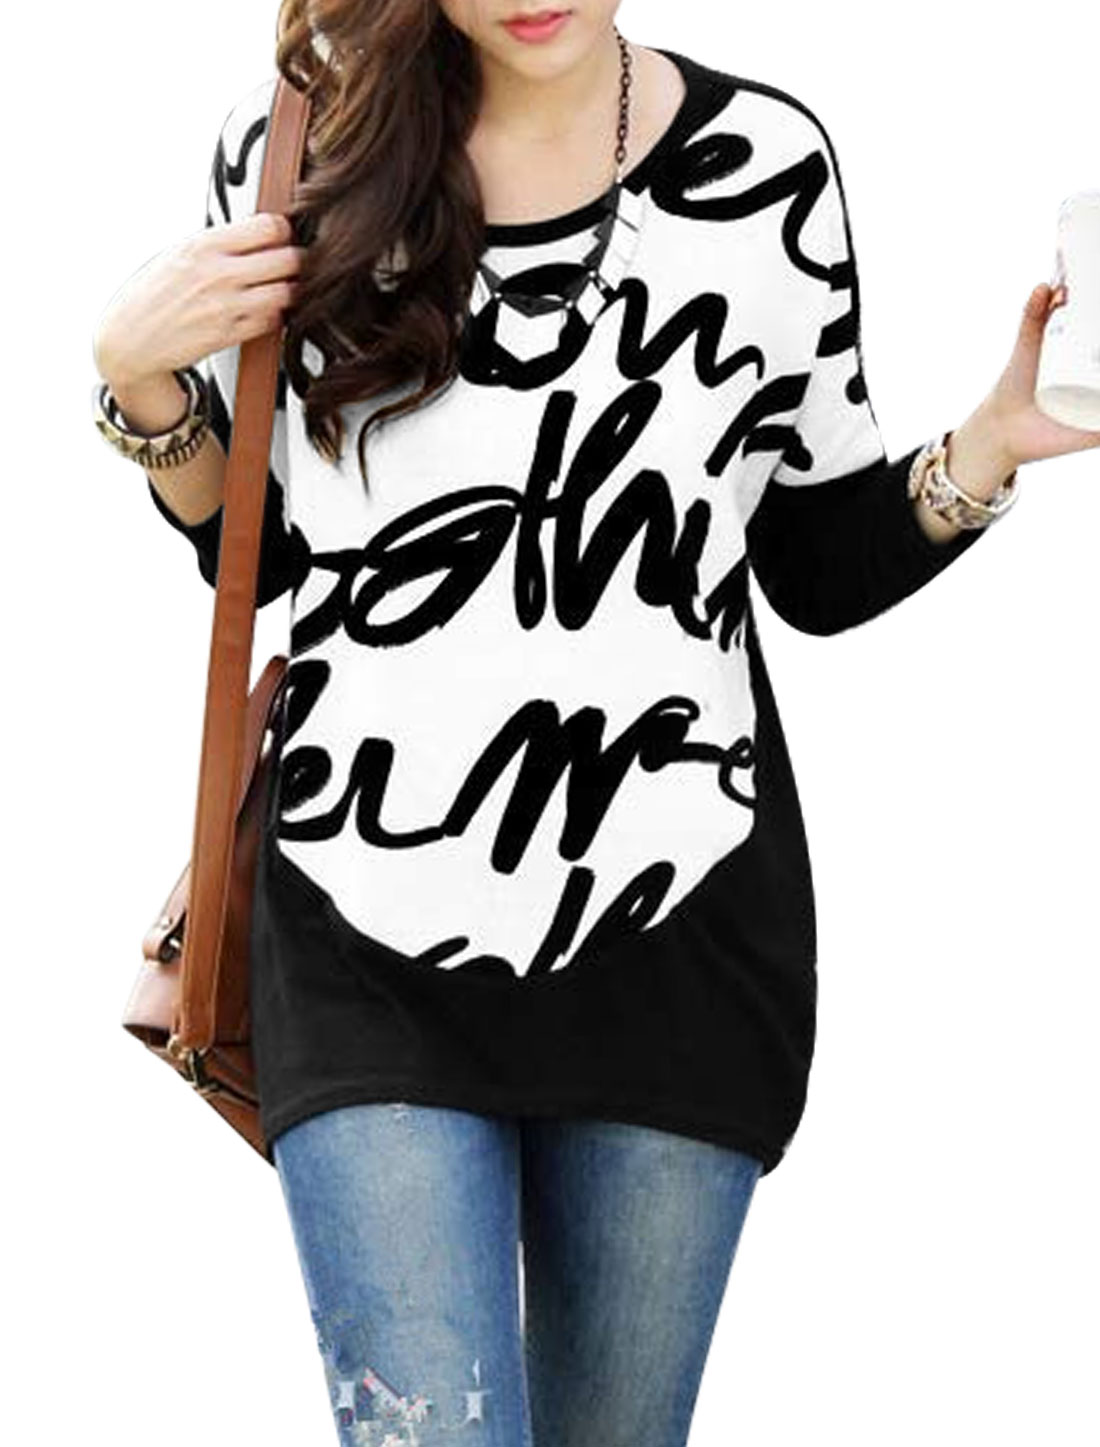 Ladies Black White Batwing Sleeves Round Neck Pullover Fashion Tunic Top S